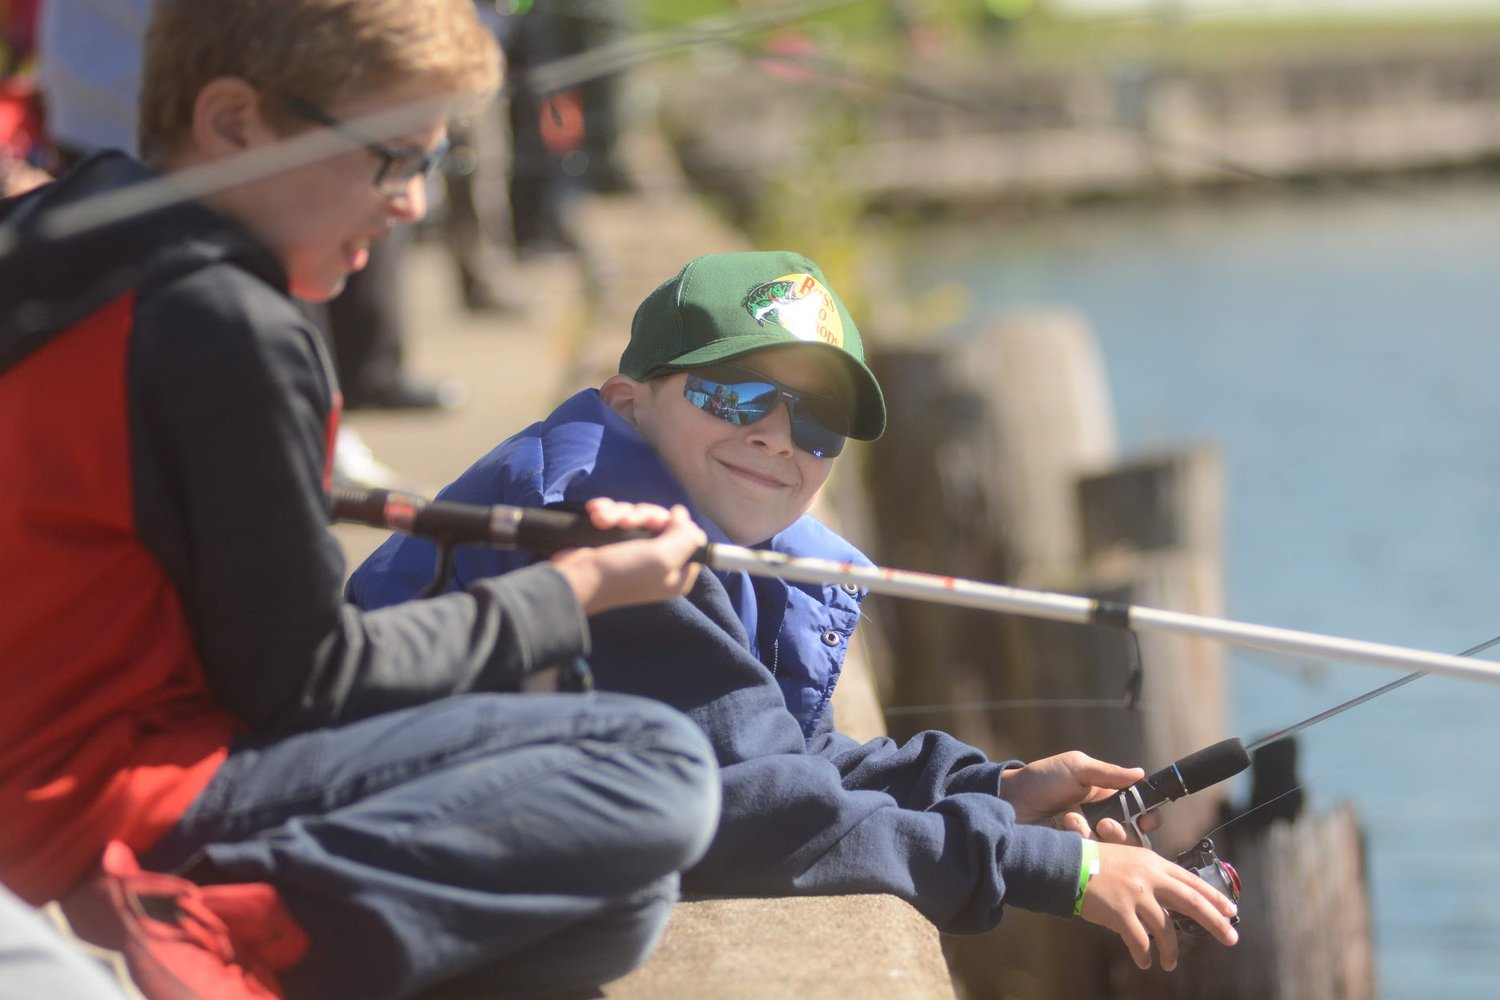 FISHING FUN — Carlo Anthony, 10, son of Ed D'lessandro gives a smile as a fishes from the dock at Bellamy Harbor during the Youth Fishing Derby presented by the Rome Police Department Benevolent Association on Saturday.